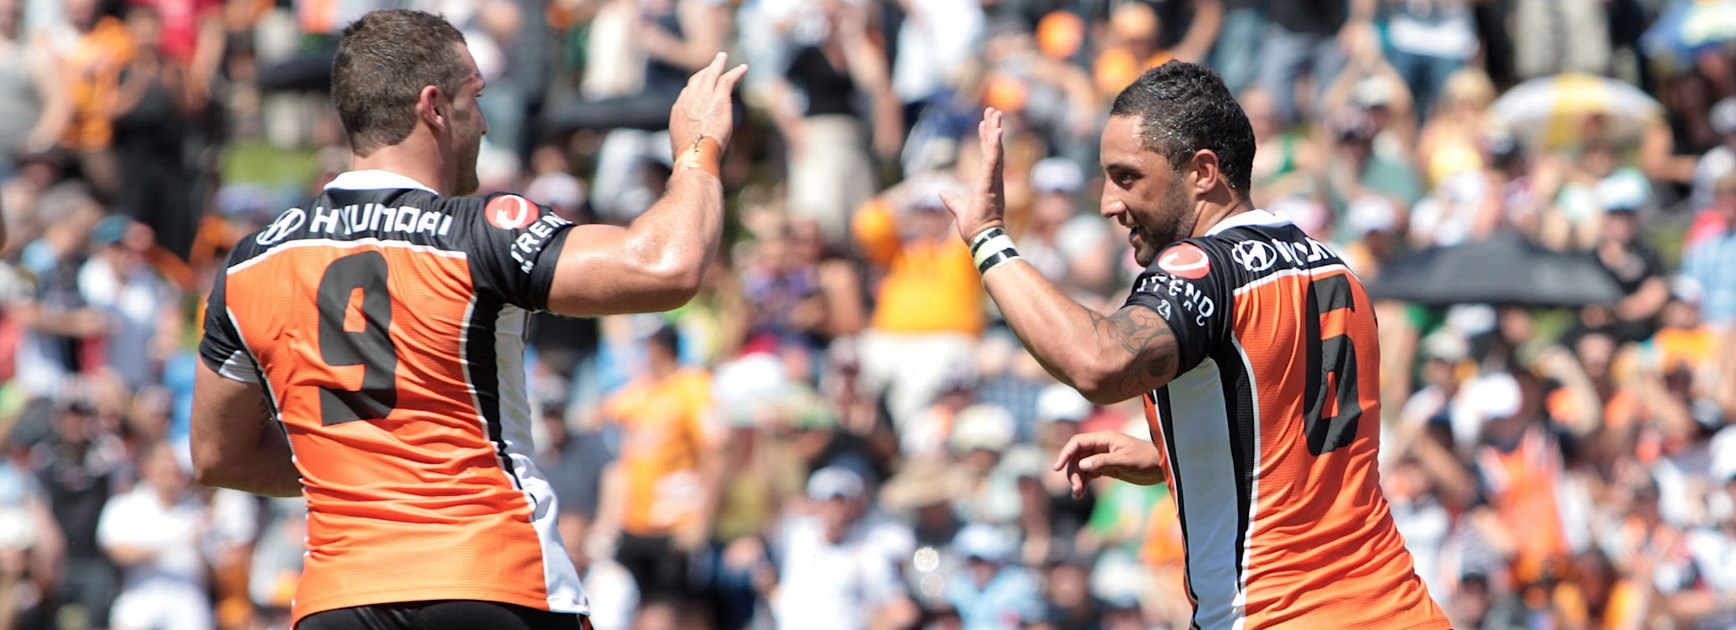 Farah, Marshall reunion not just a feel-good story